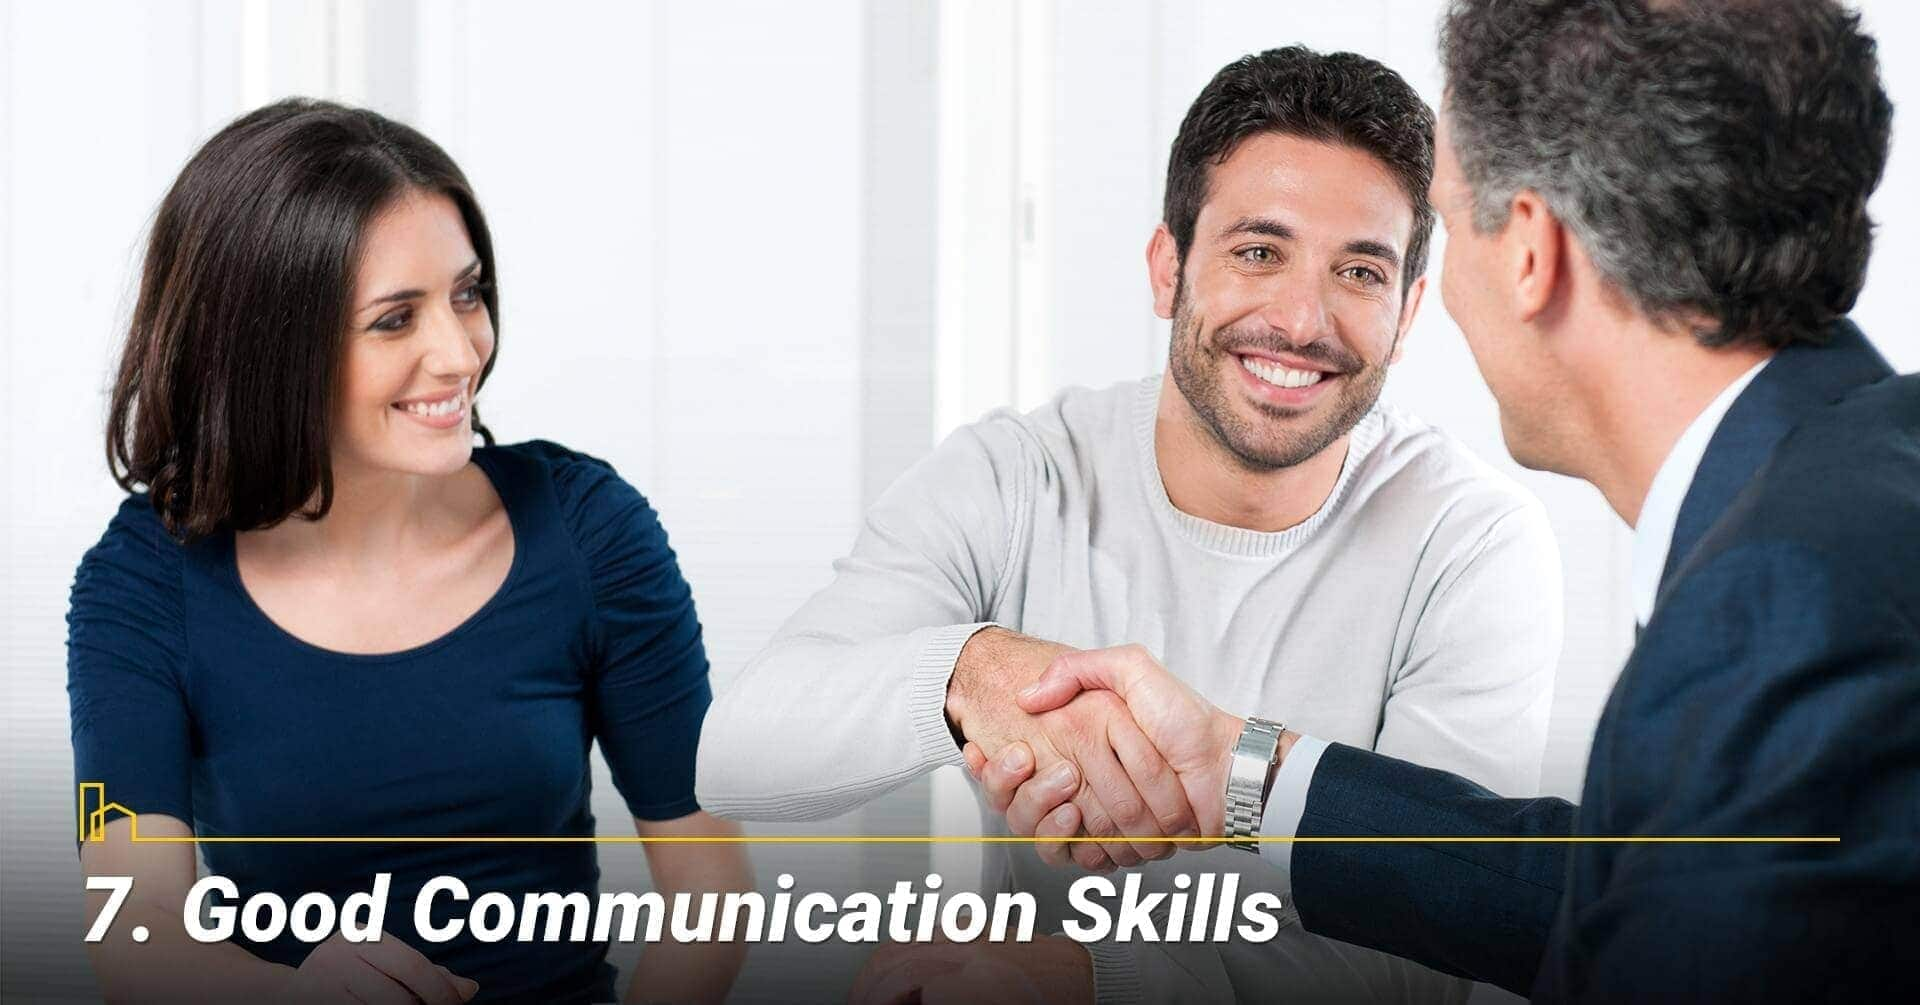 Good Communication Skills, get their points across well